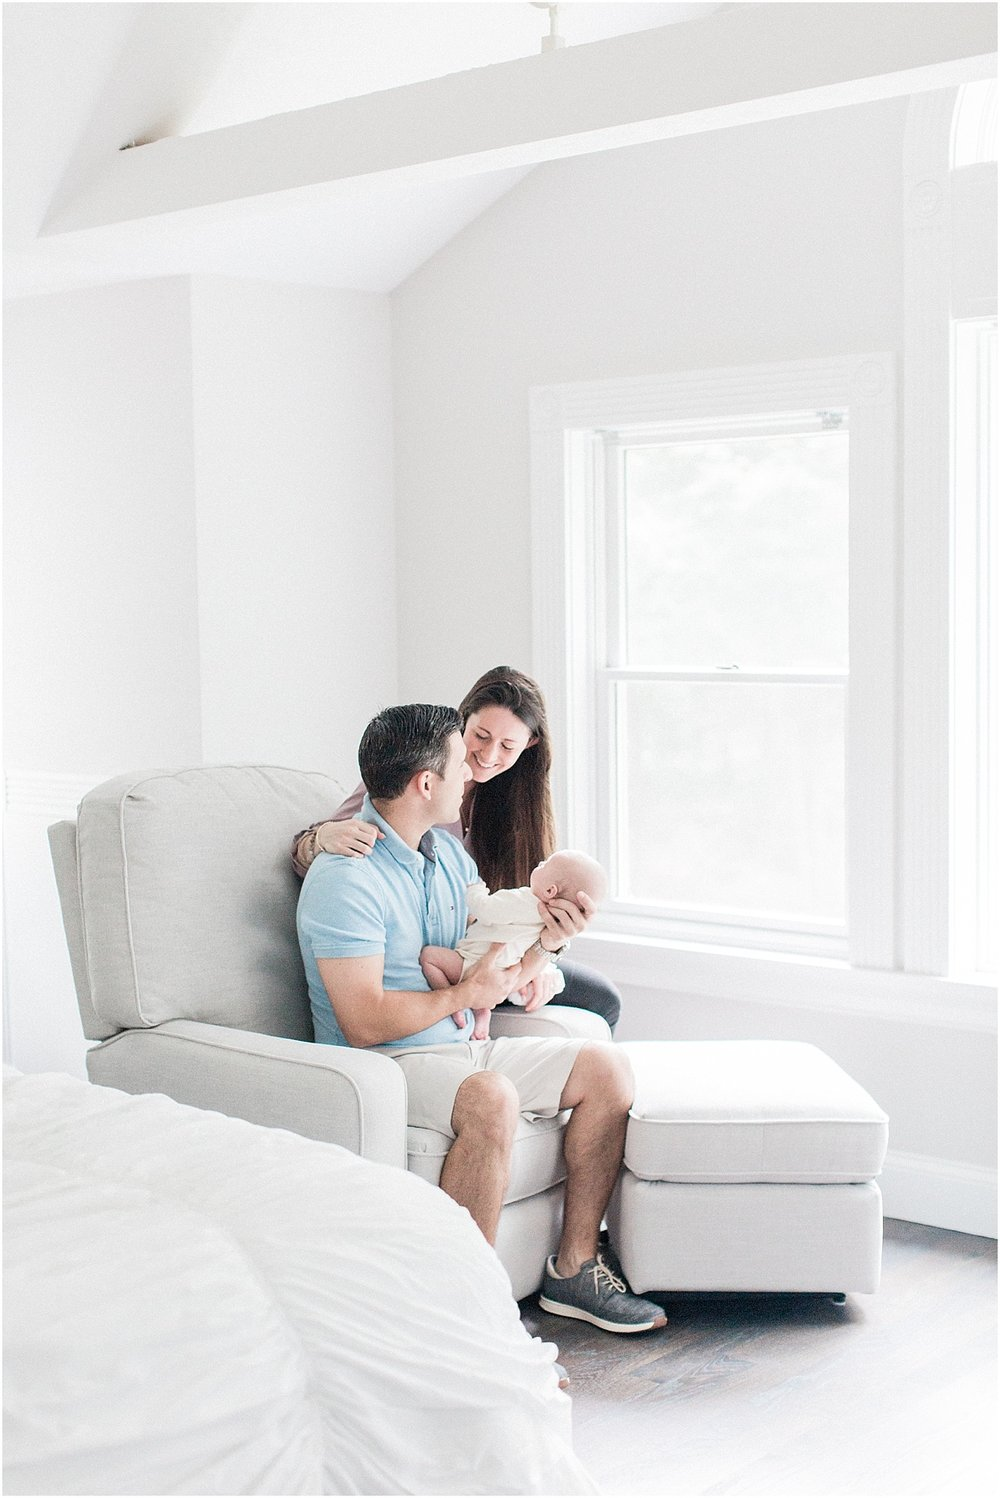 mia_jane_matt_brittany_newborn_lifestyle_neautral_gray_home_shoot_cape_cod_boston_wedding_photographer_meredith_jane_photography_photo_0625.jpg